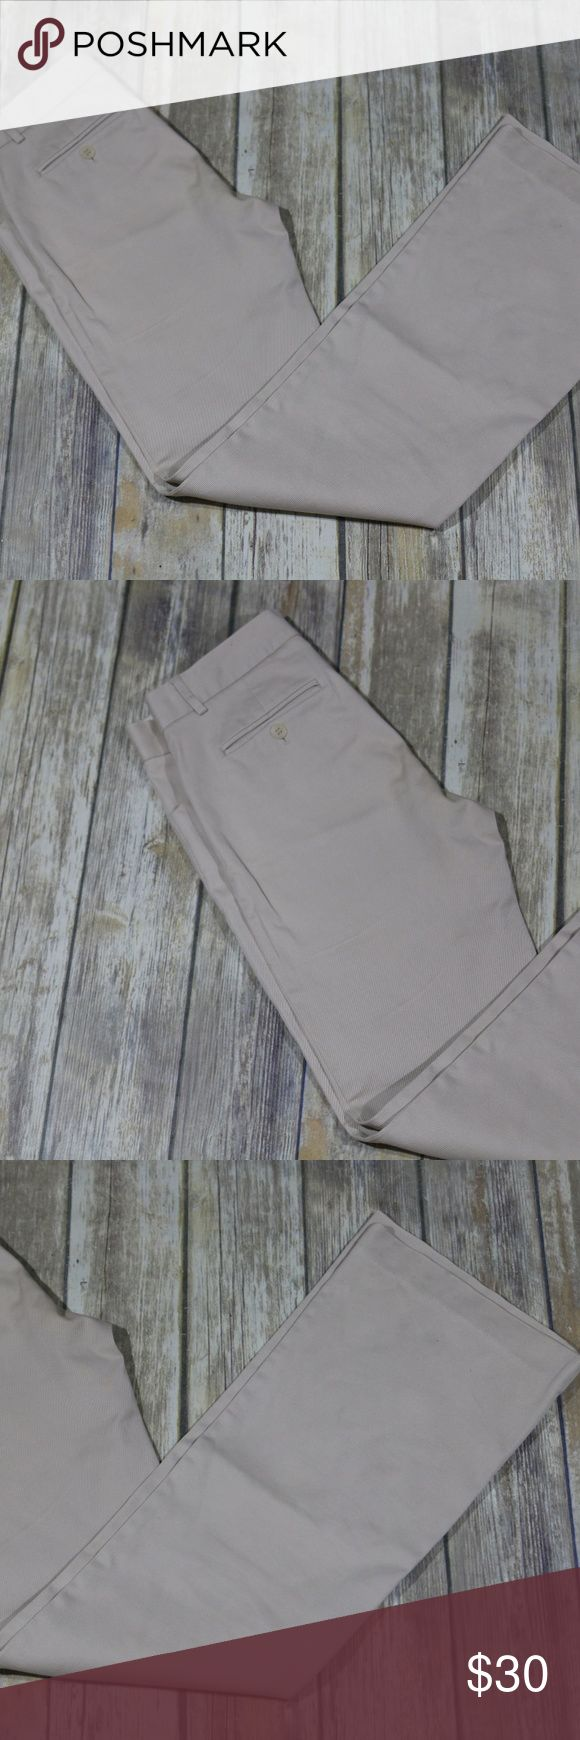 """Theory straight leg trouser pants khakis career Theory Women's straight leg trouser pants.  Size 6.  Khaki color.  Zip fly with hook-and-bar closure.  Front slant pockets; back buttoned welt pockets.  Belt loops.  Unlined.  Straight leg, widens at knees (almost a boot leg style).  Style #21004235.  97% cotton, 3% lycra.  Dry clean.  In good, preowned condition with no flaws noted.  No trades, offers welcome.    Approximate measurements   Waist: 15"""" left to right at back  Rise: 8""""  Inseam…"""